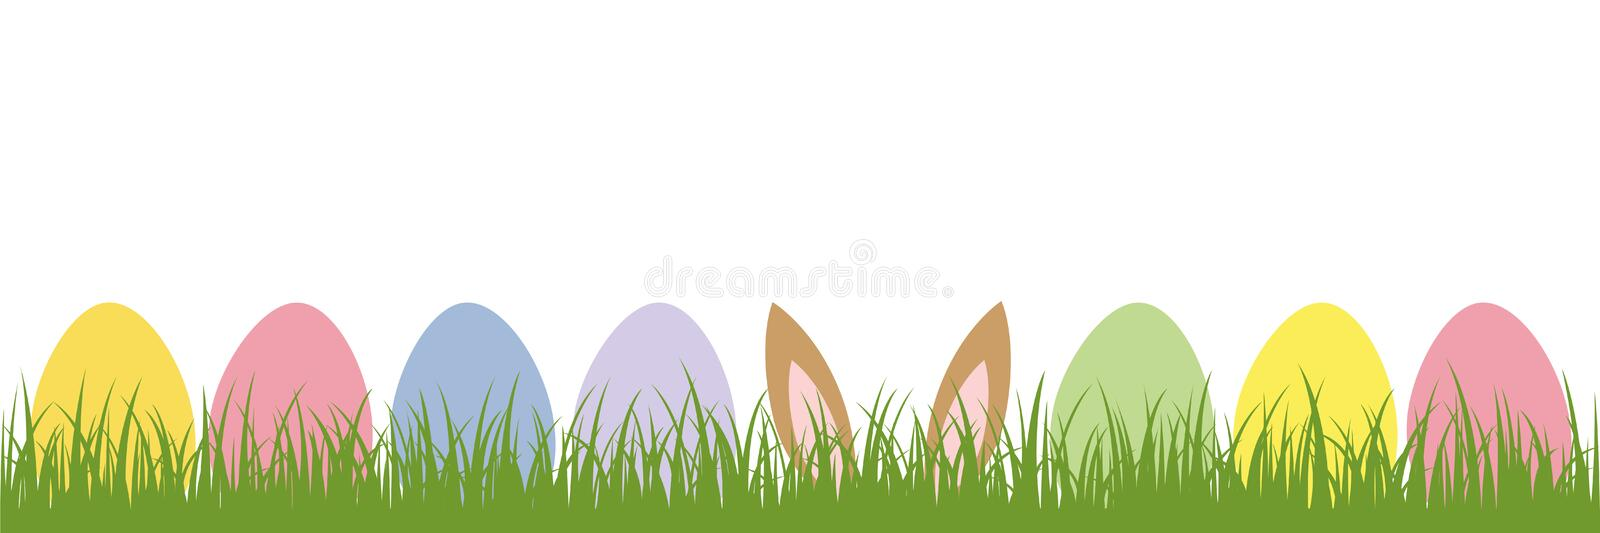 Hare ears in the meadow between colorful Easter eggs vector illustration